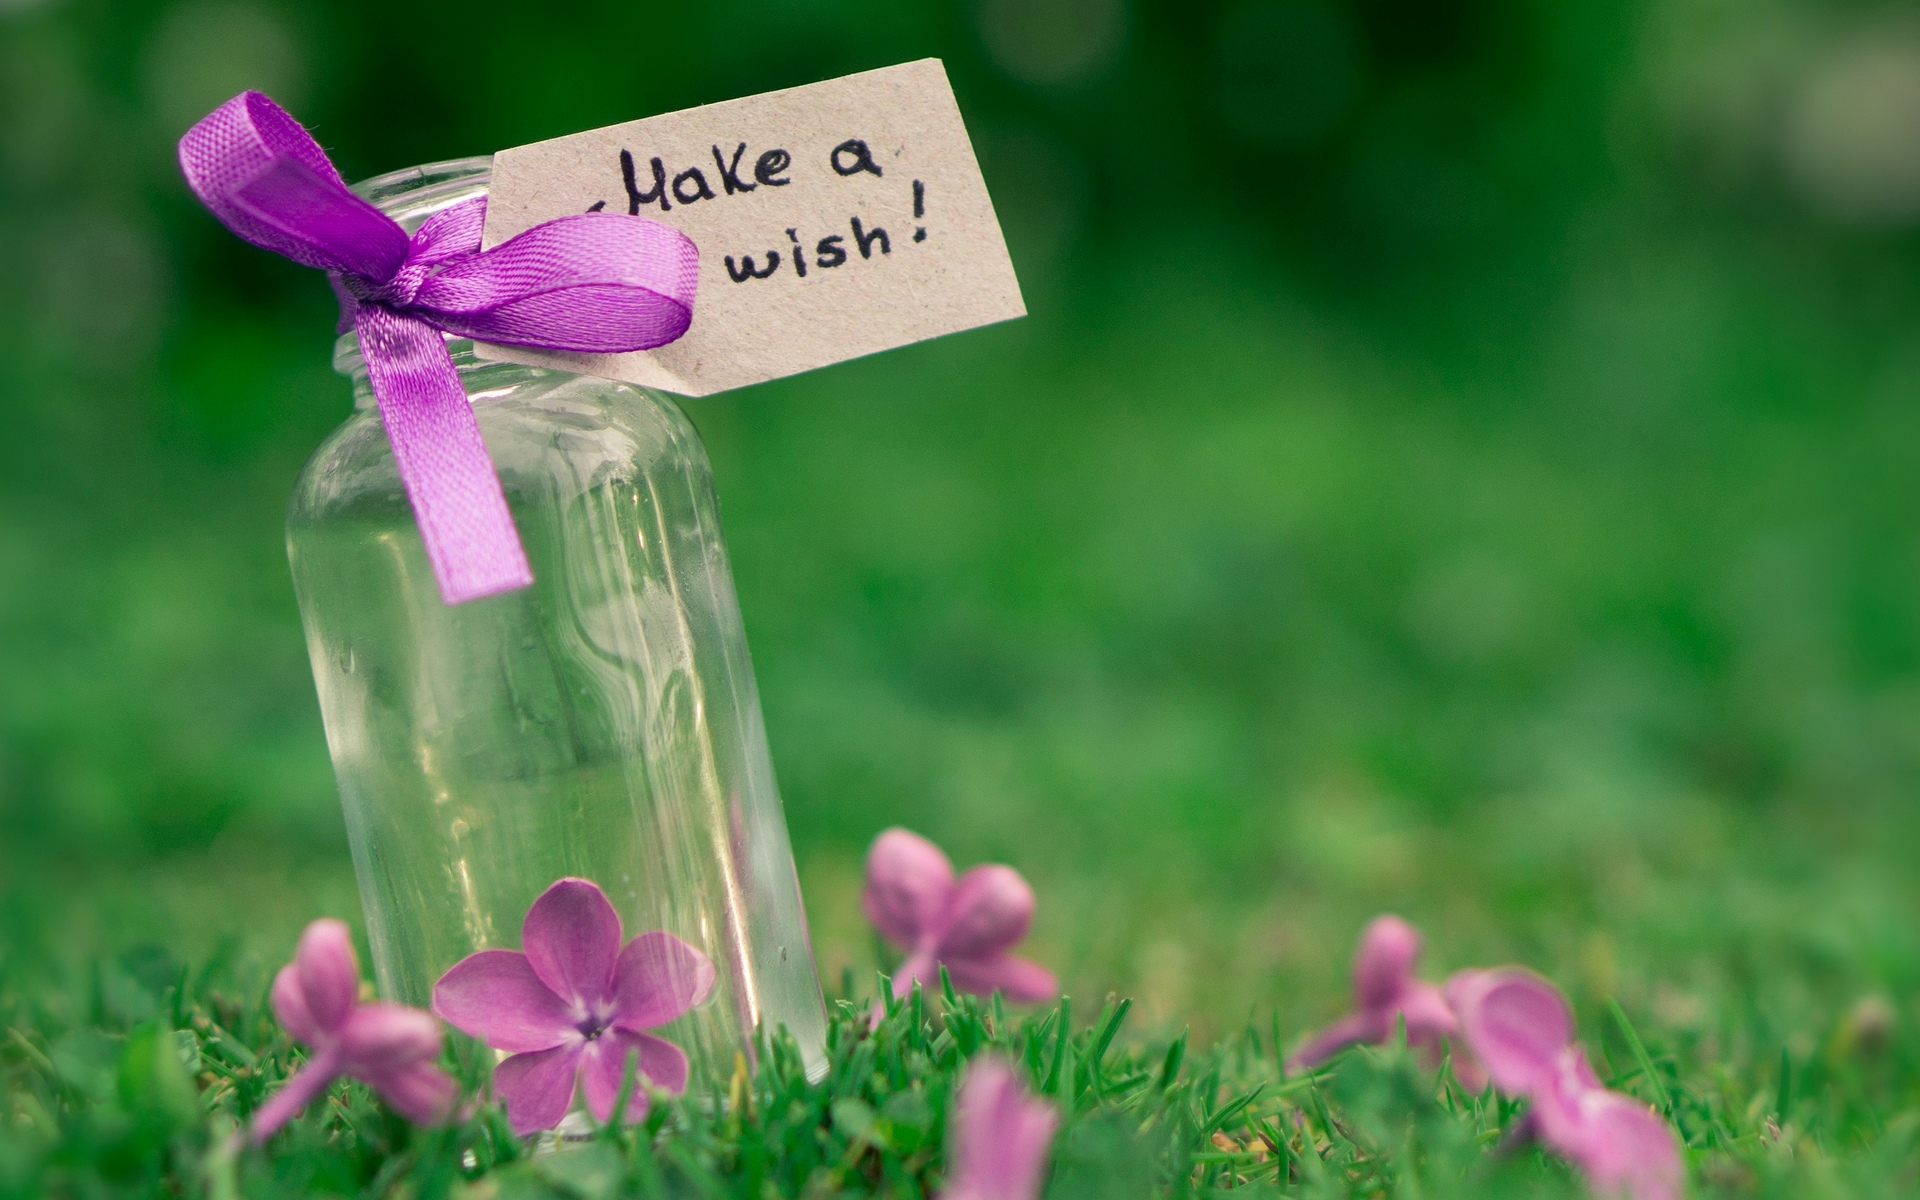 mood-cans-tape-ribbon-purple-sign-note-flowers-flowers-flowers-grass-green-nature-macro-macro-background-wallpaper-widescreen